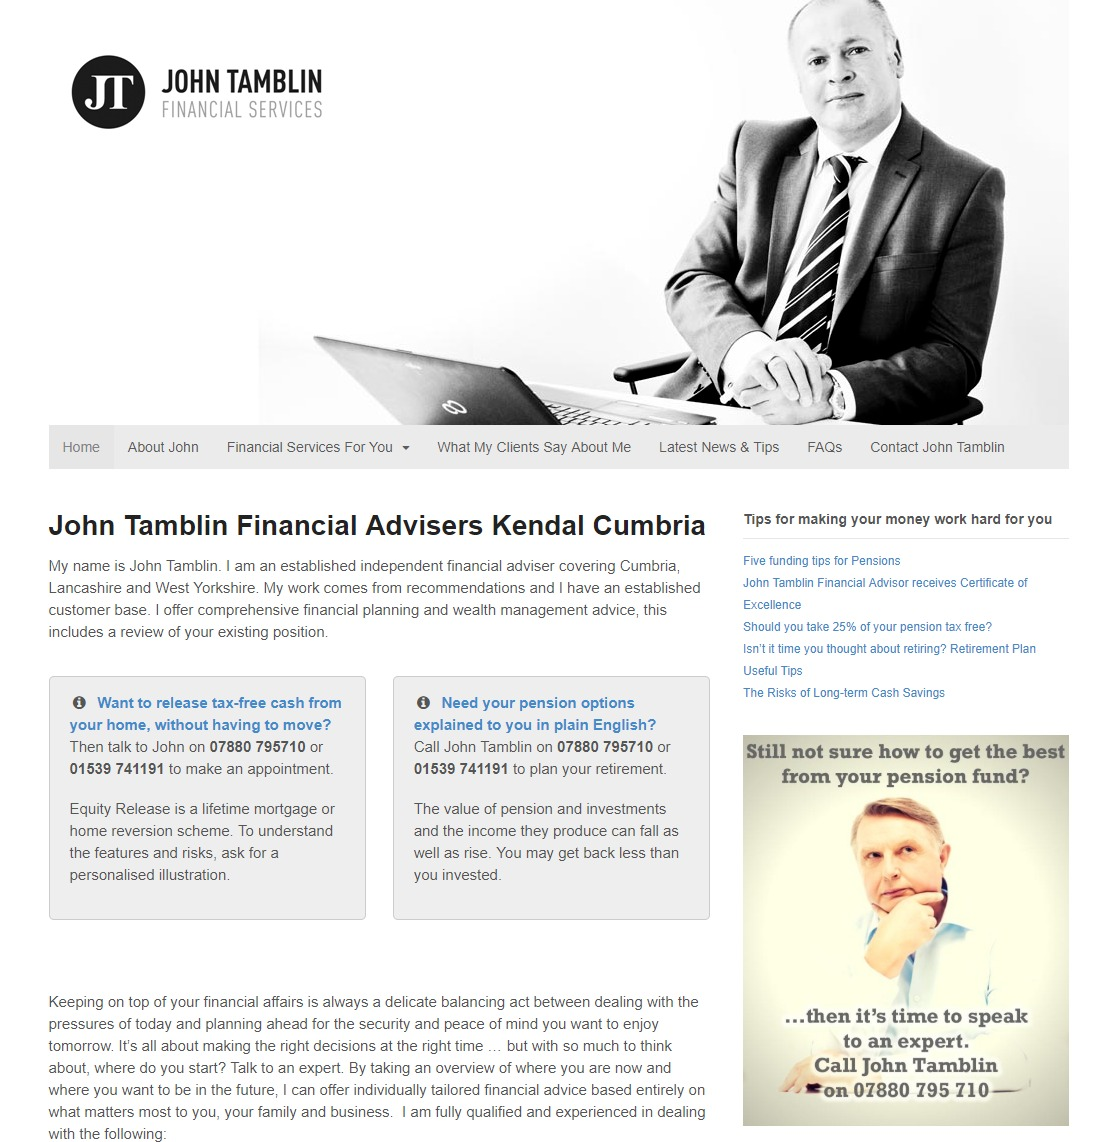 John Tamblin Financial Advisers Kendal